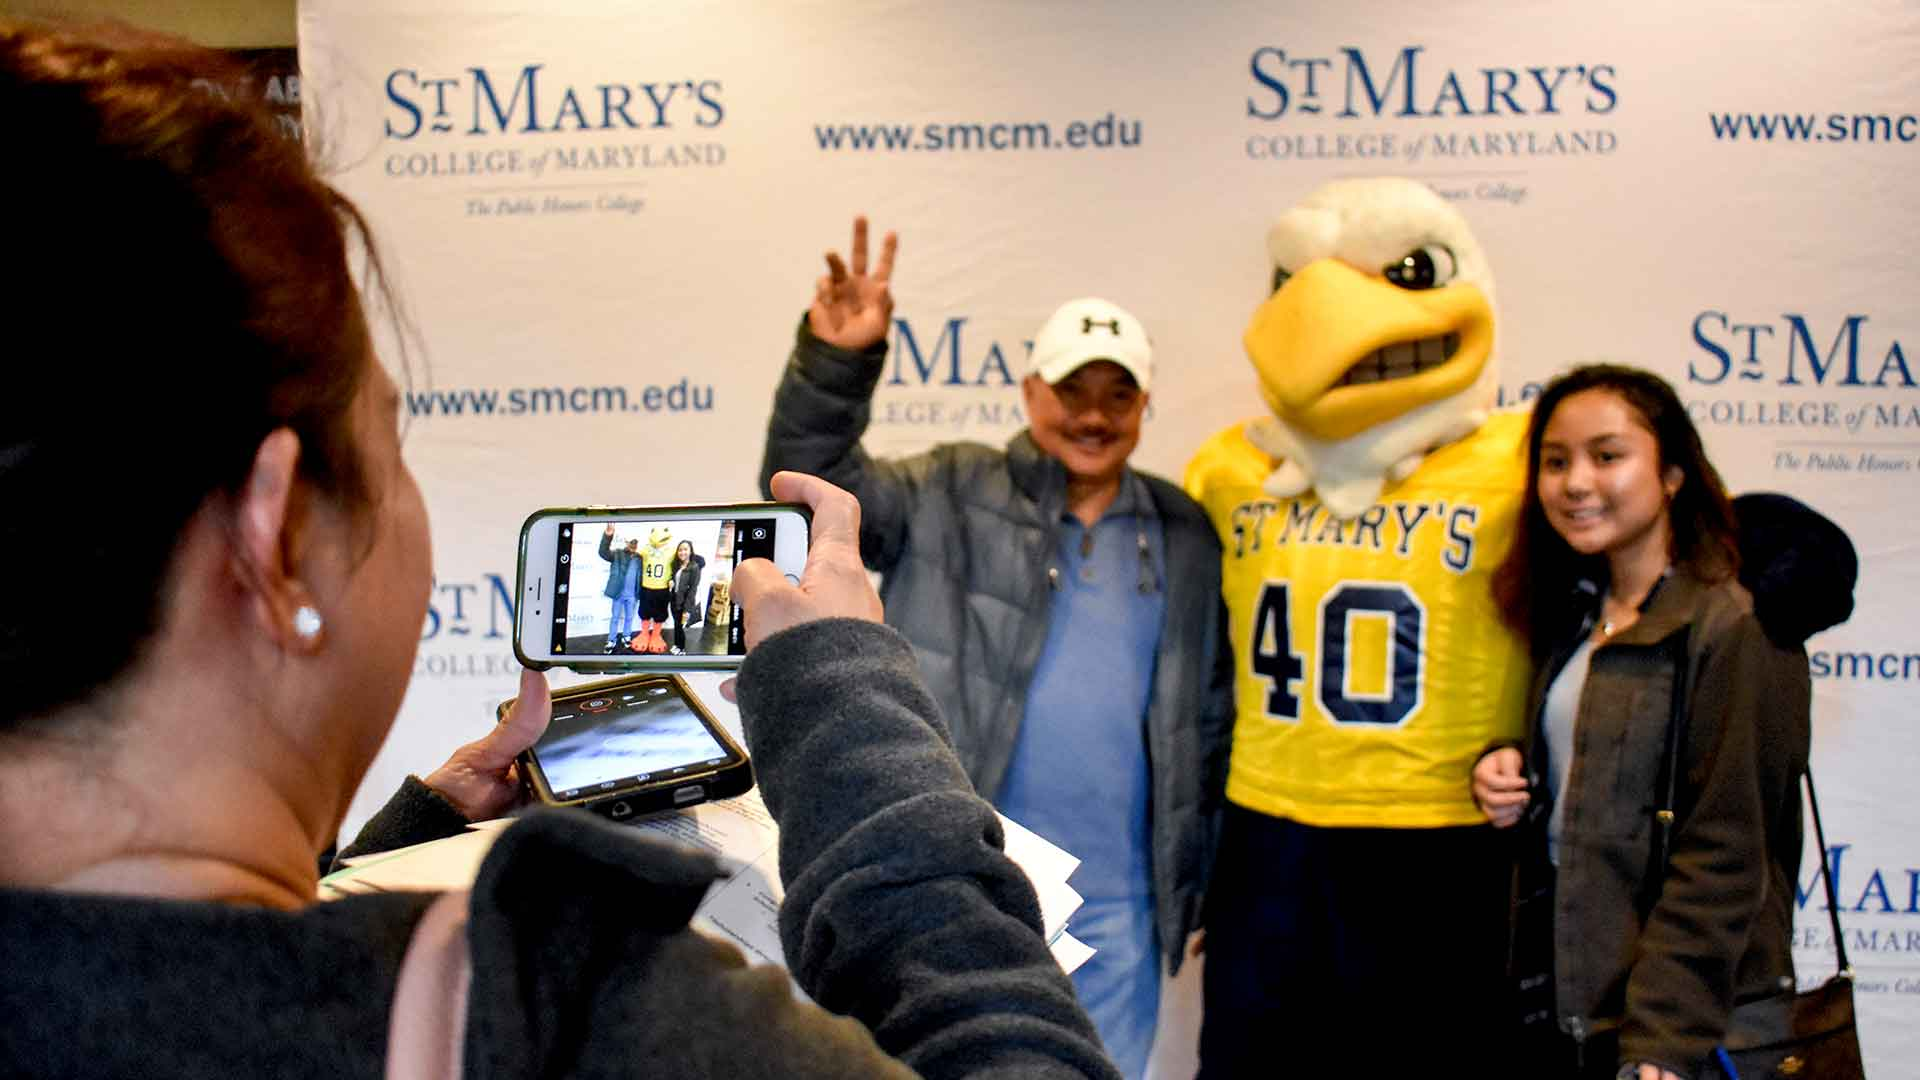 SMCM Admitted Students day photoshoot with Solomon the Seahawk and new female student and family members